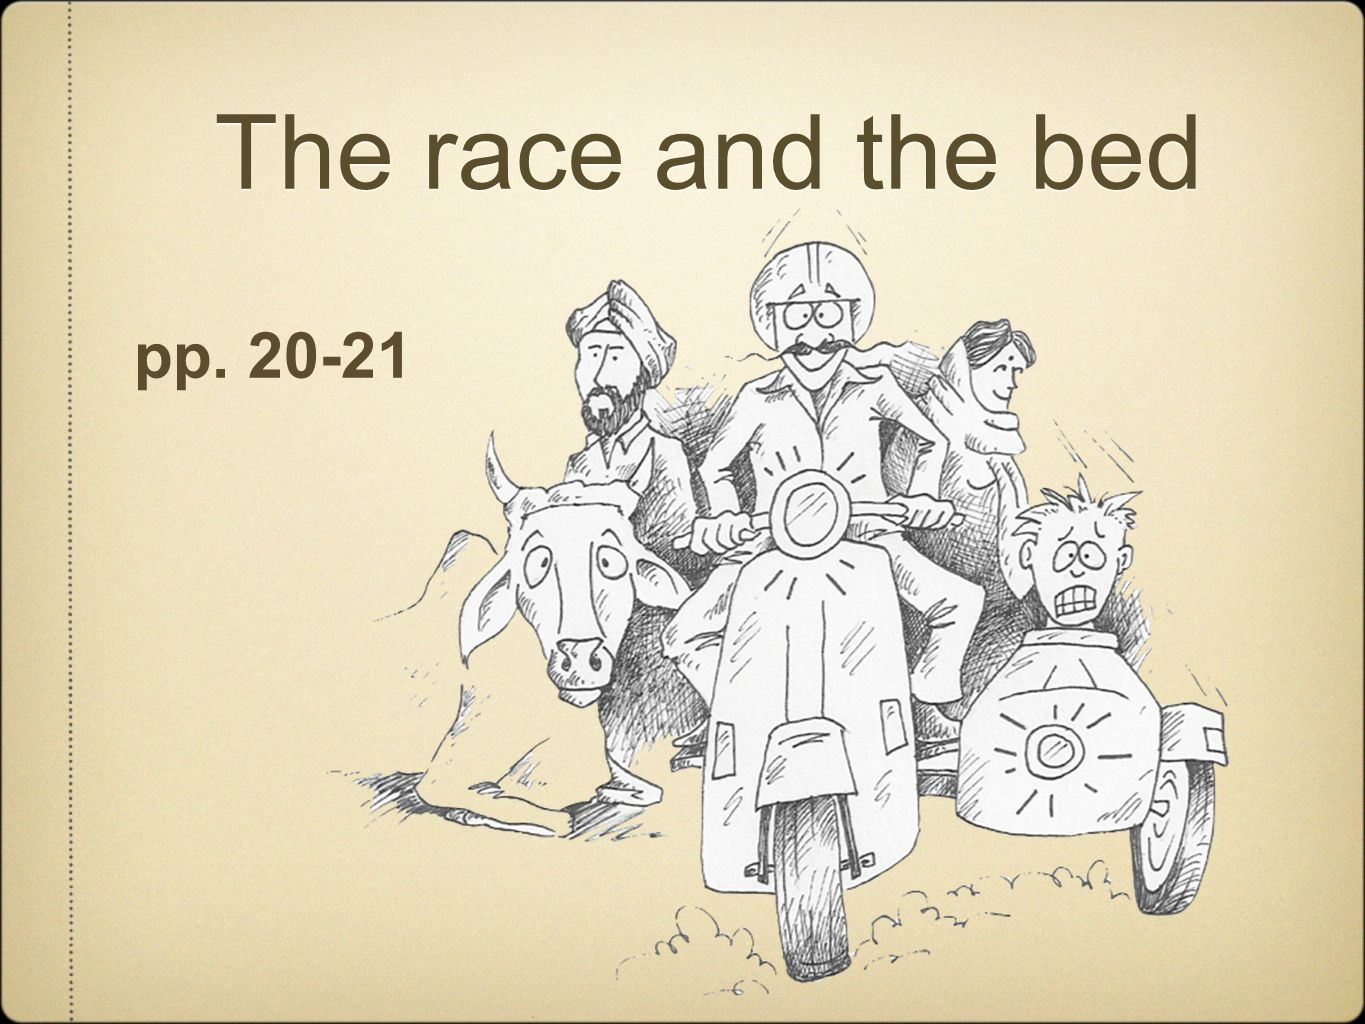 The race and the bed pp. 20-21